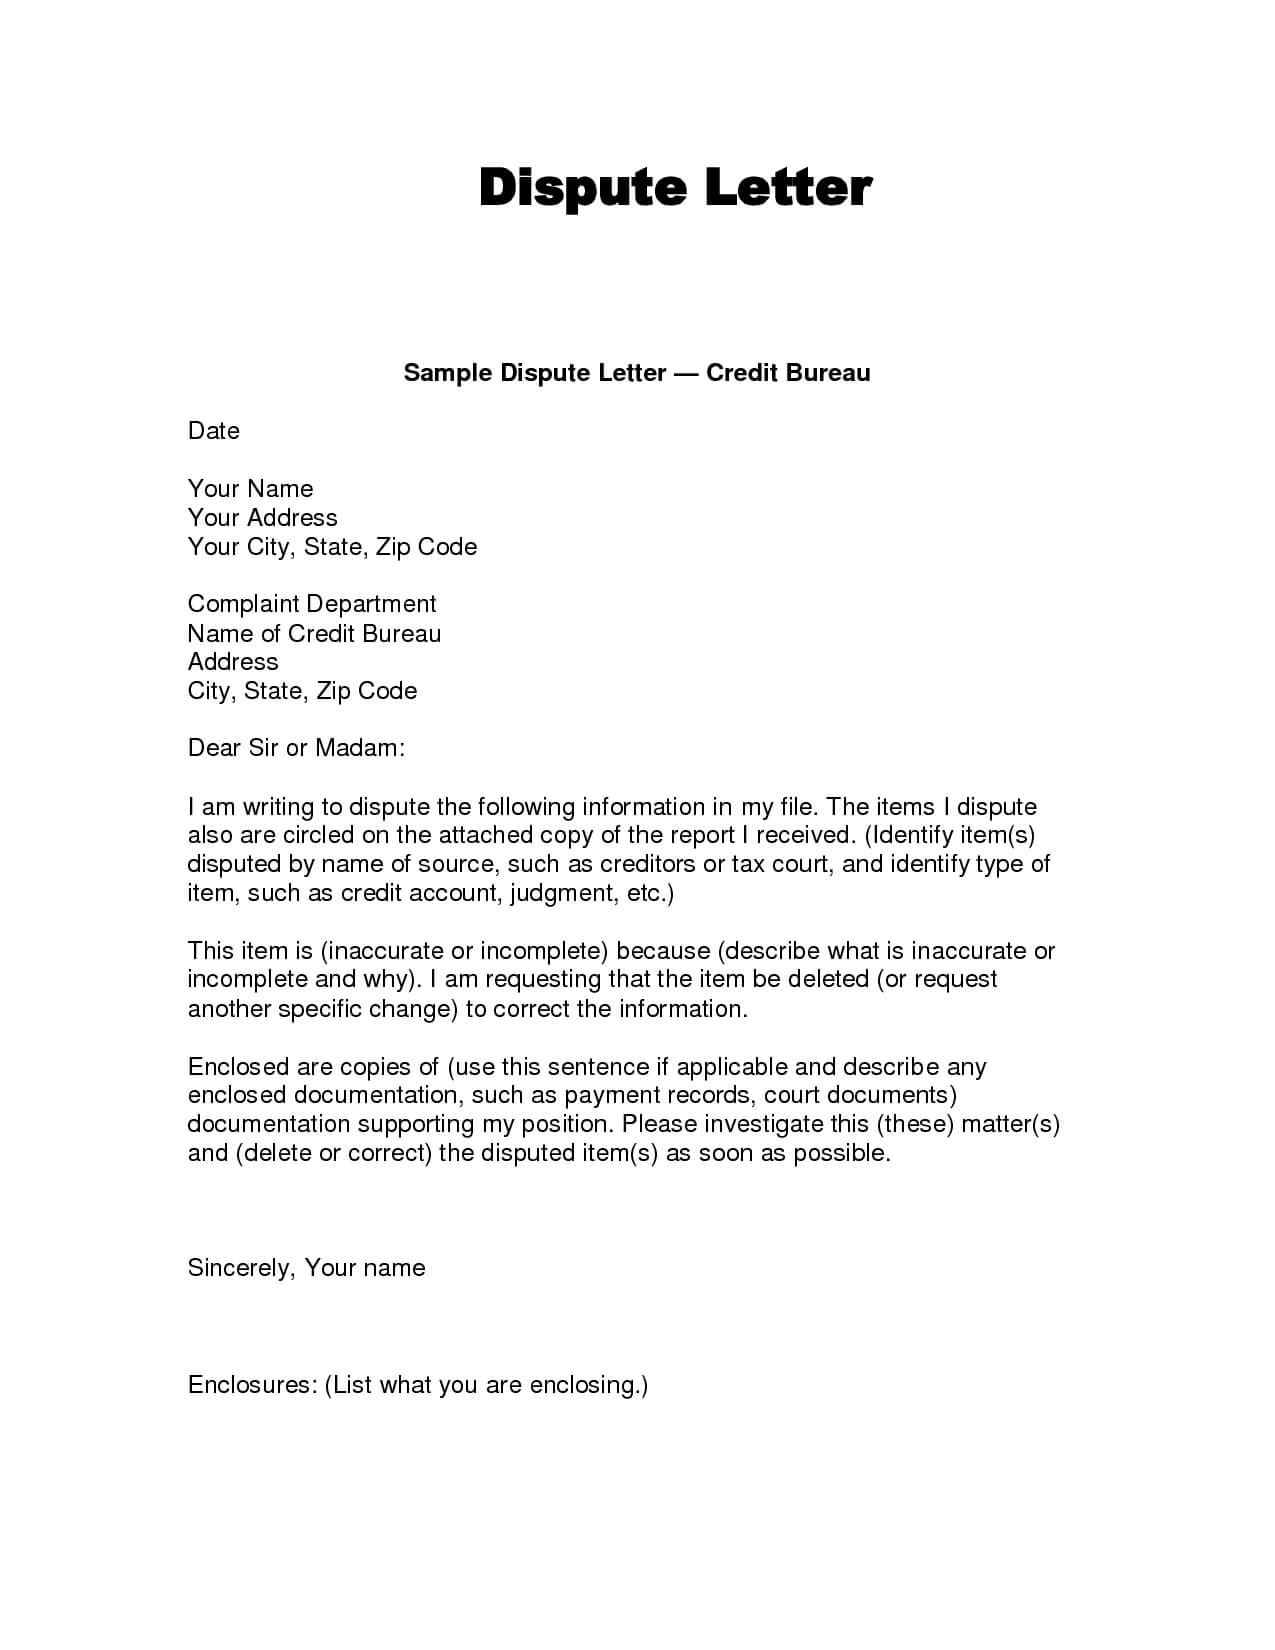 Writing Dispute Letter Format | Credit Bureaus, Lettering Inside Credit Report Dispute Letter Template